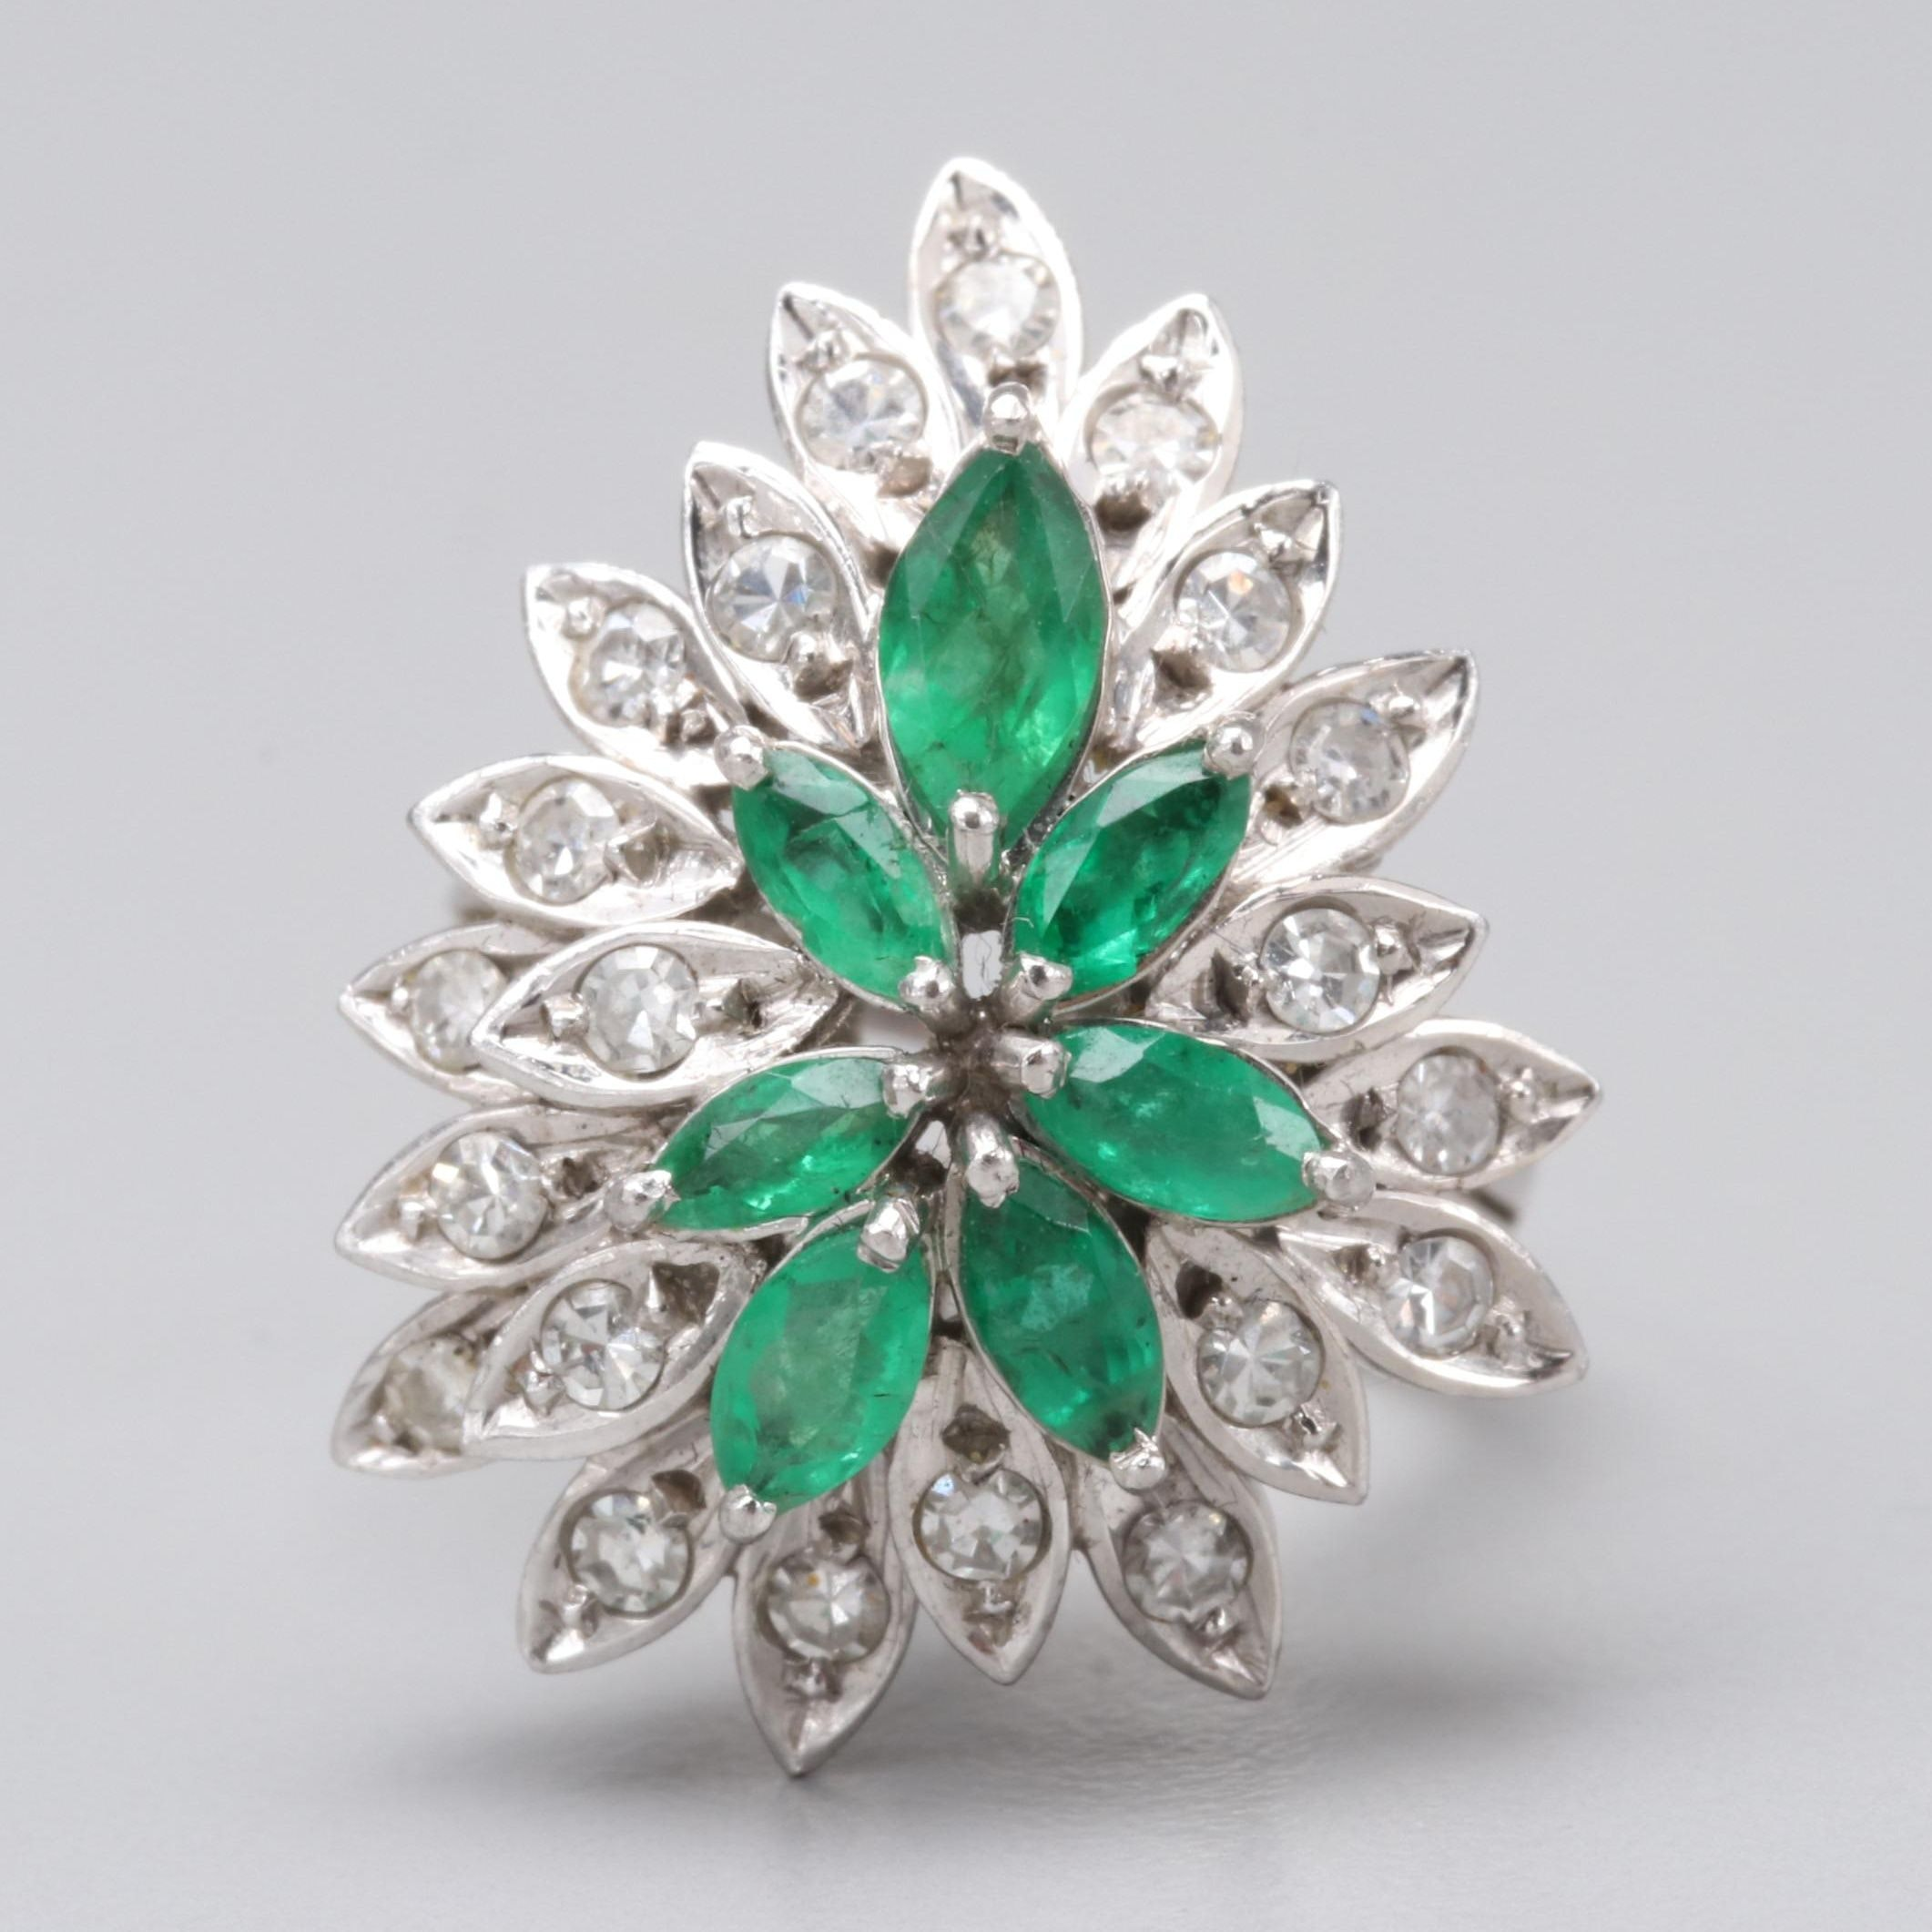 10K White Gold Emerald and Diamond Cocktail Ring